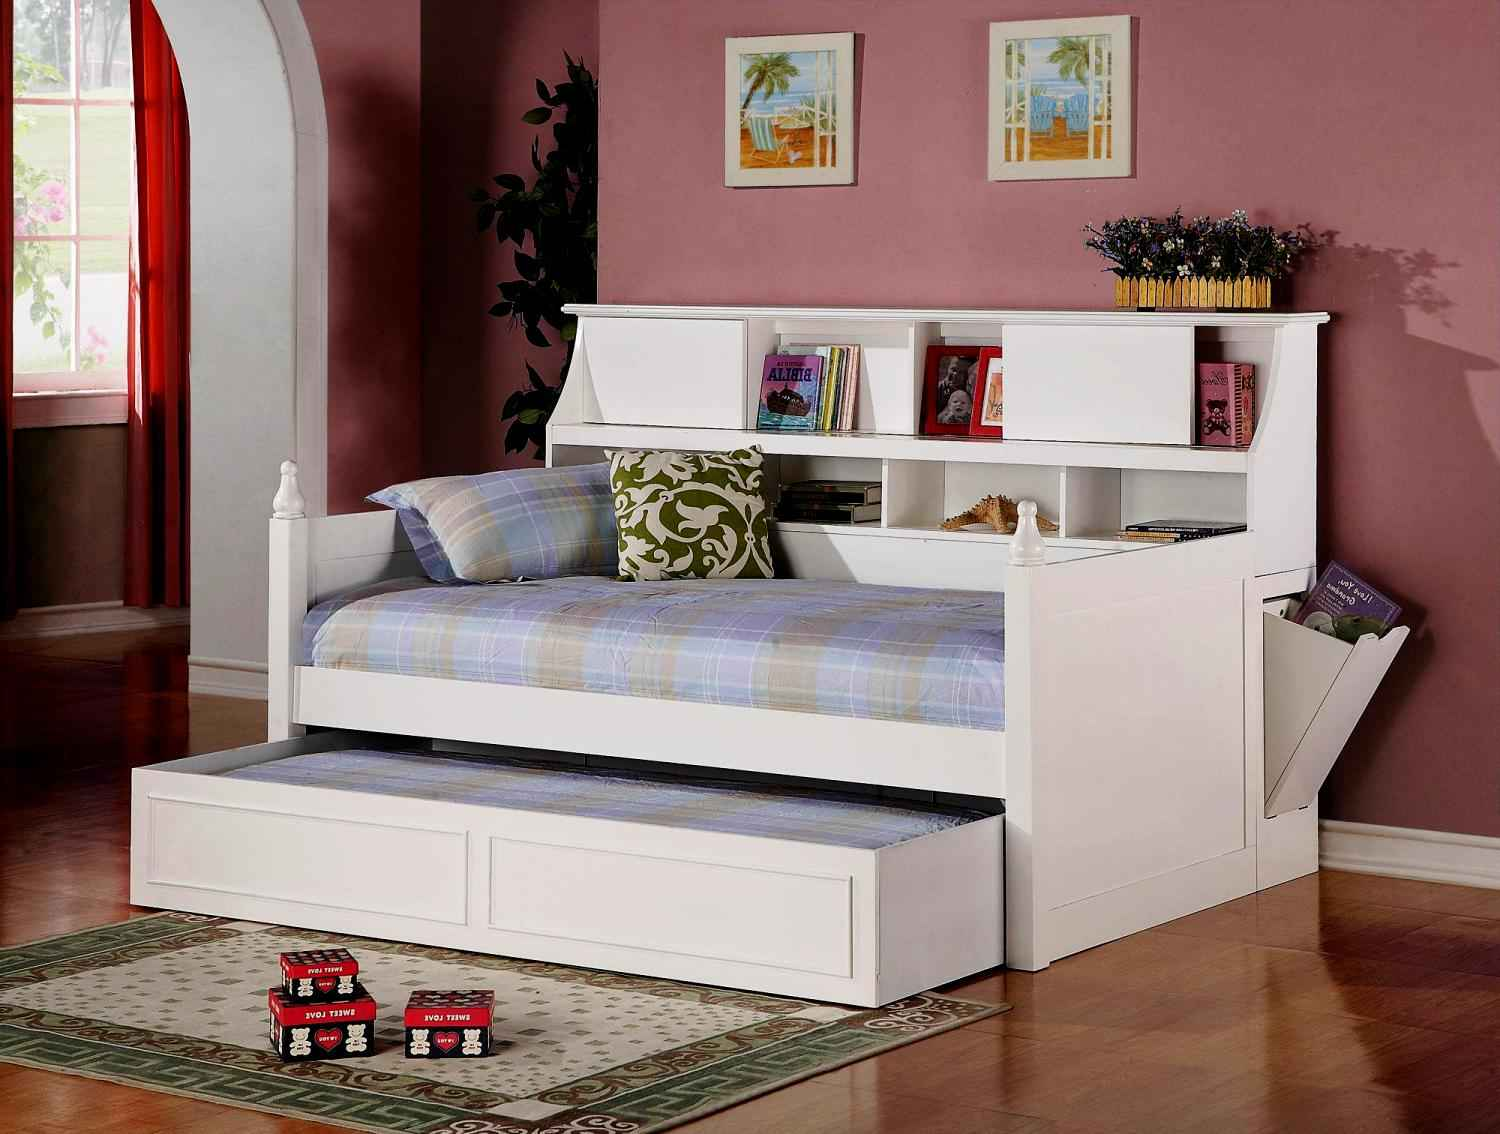 Ikea Pull Out Bed | Full Daybed | Wood Daybed with Trundle